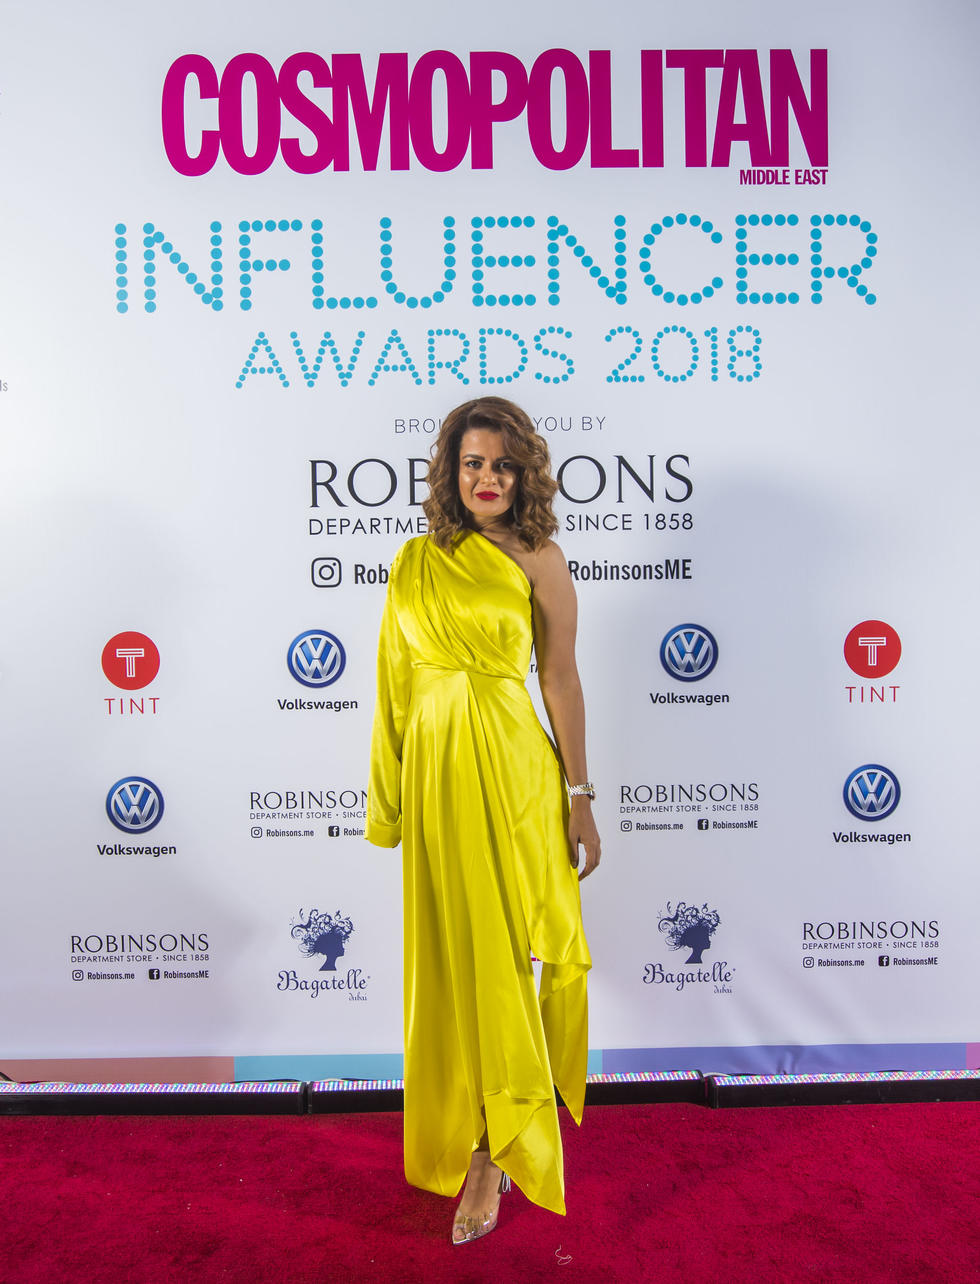 #CosmoInfluencerAwards